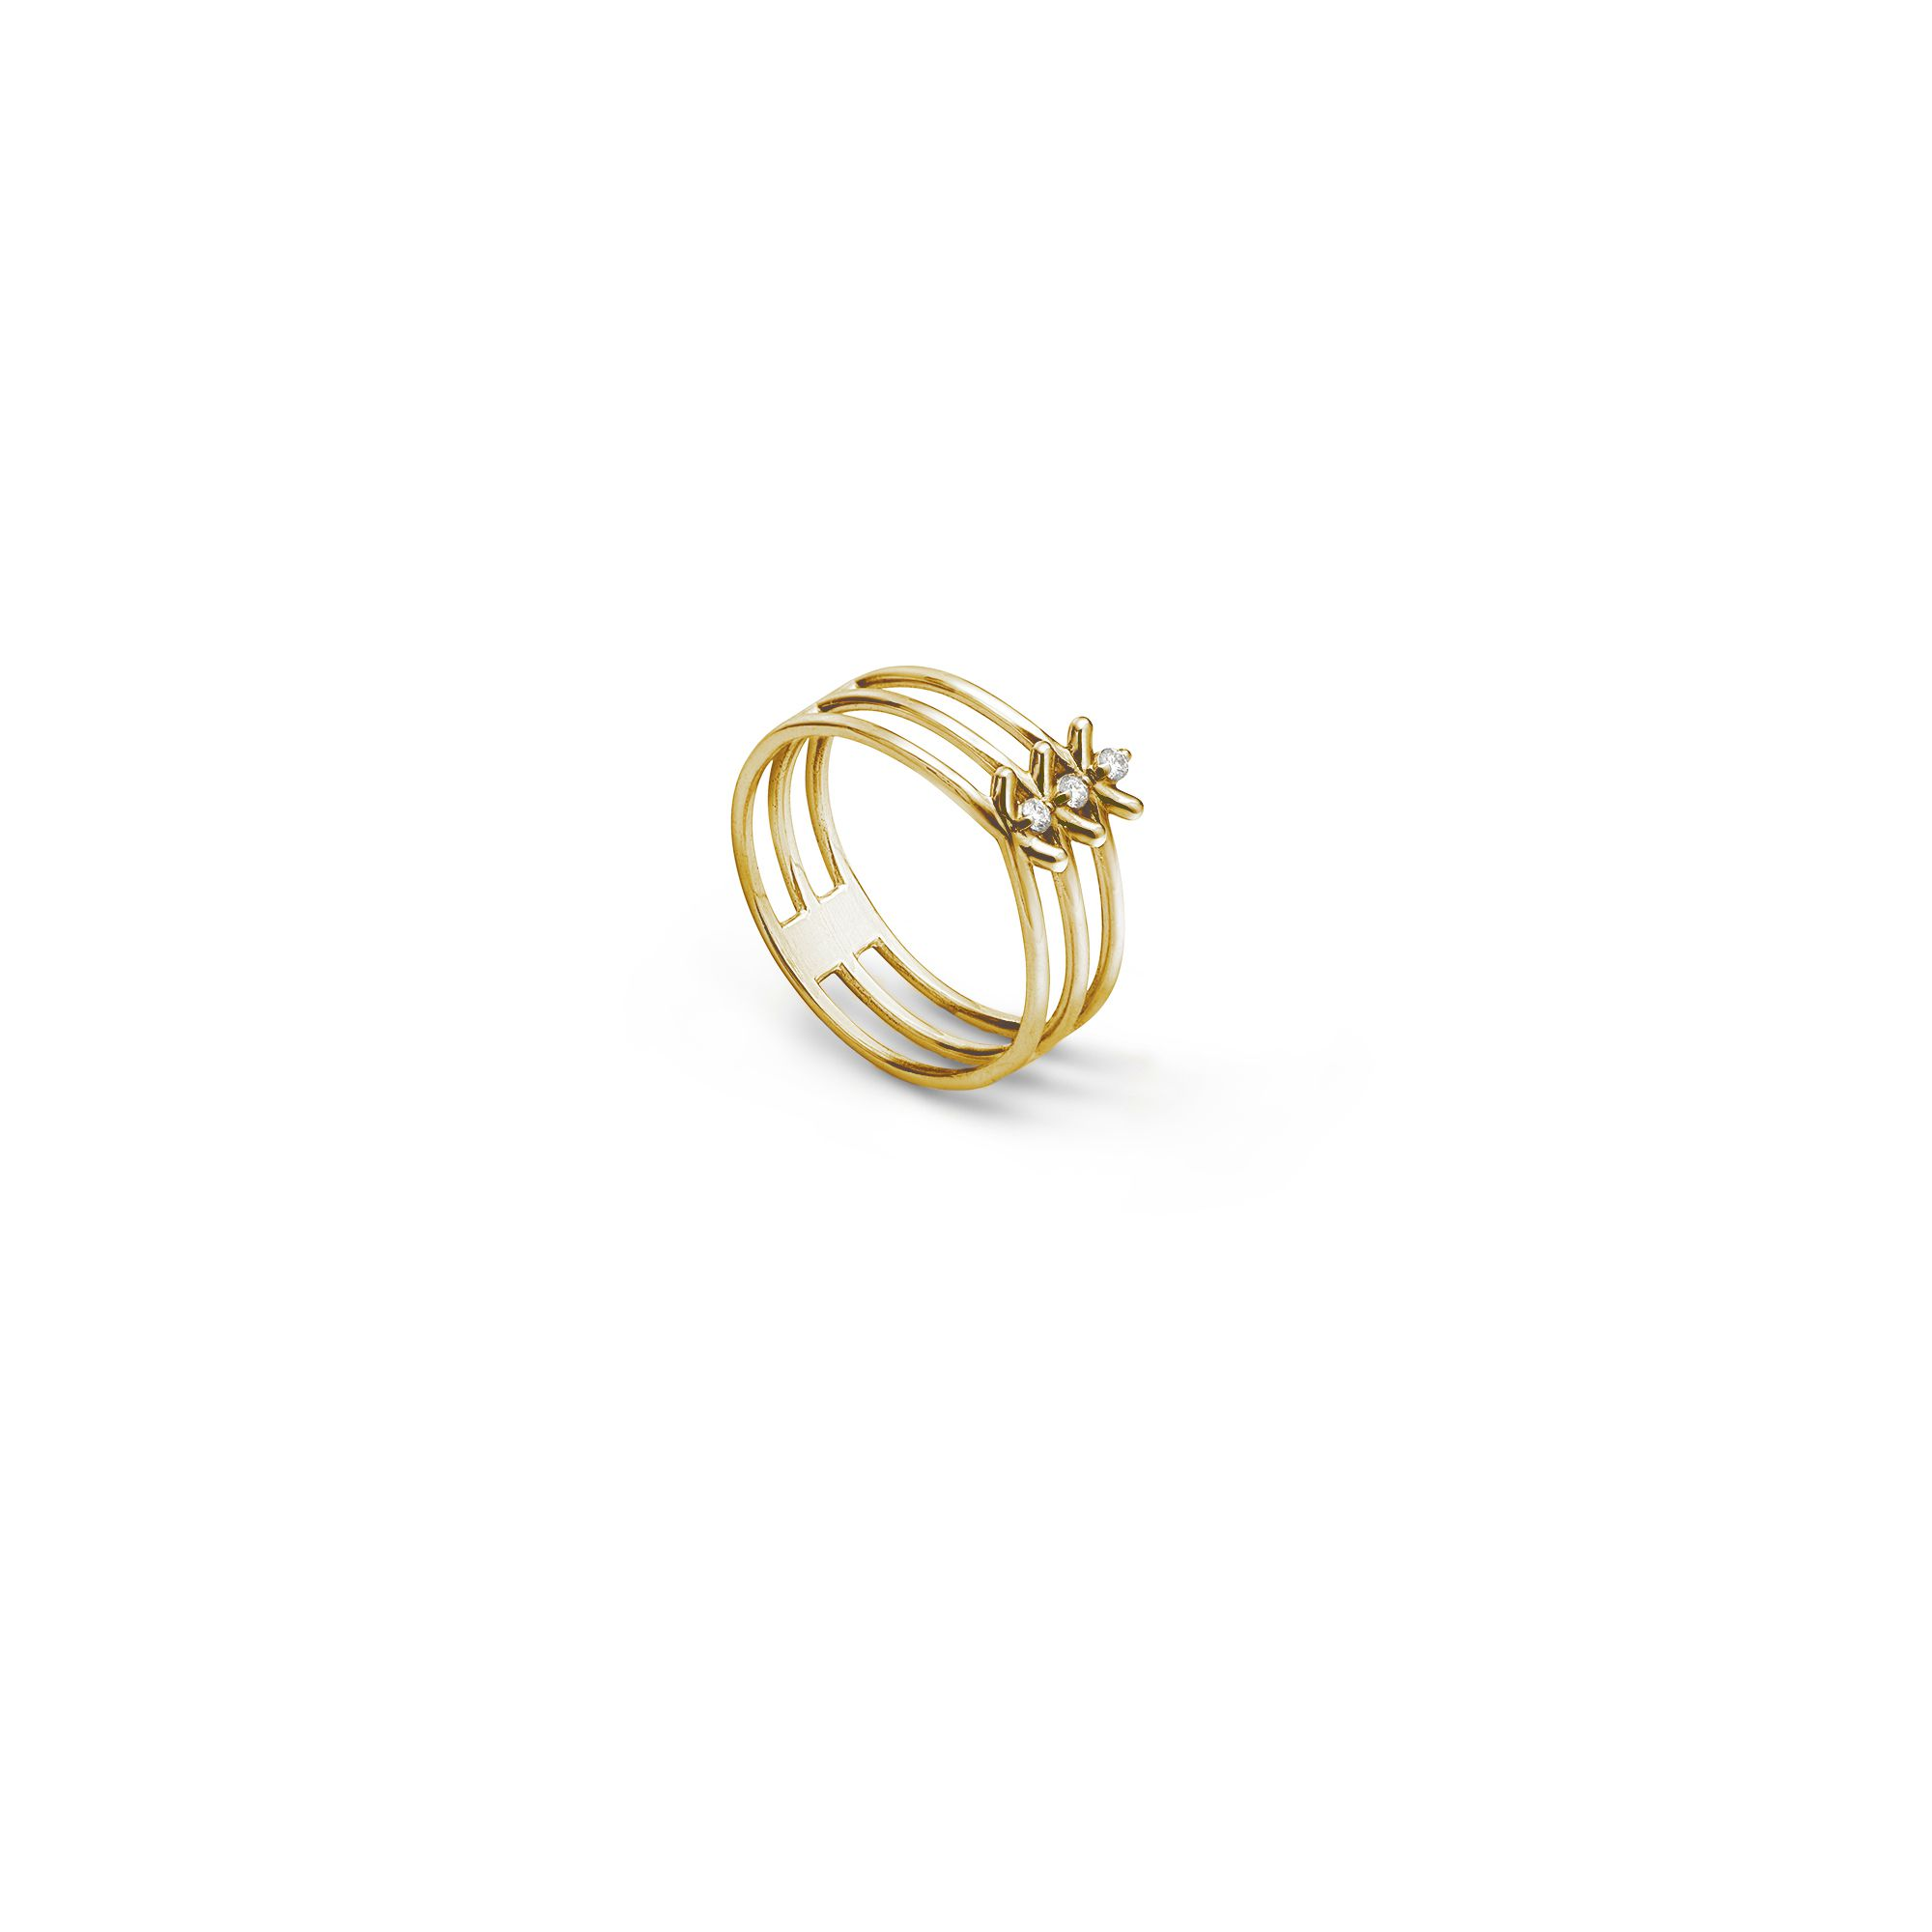 Midi-ring 'Spinae' ring Ring in yellow gold and diamonds